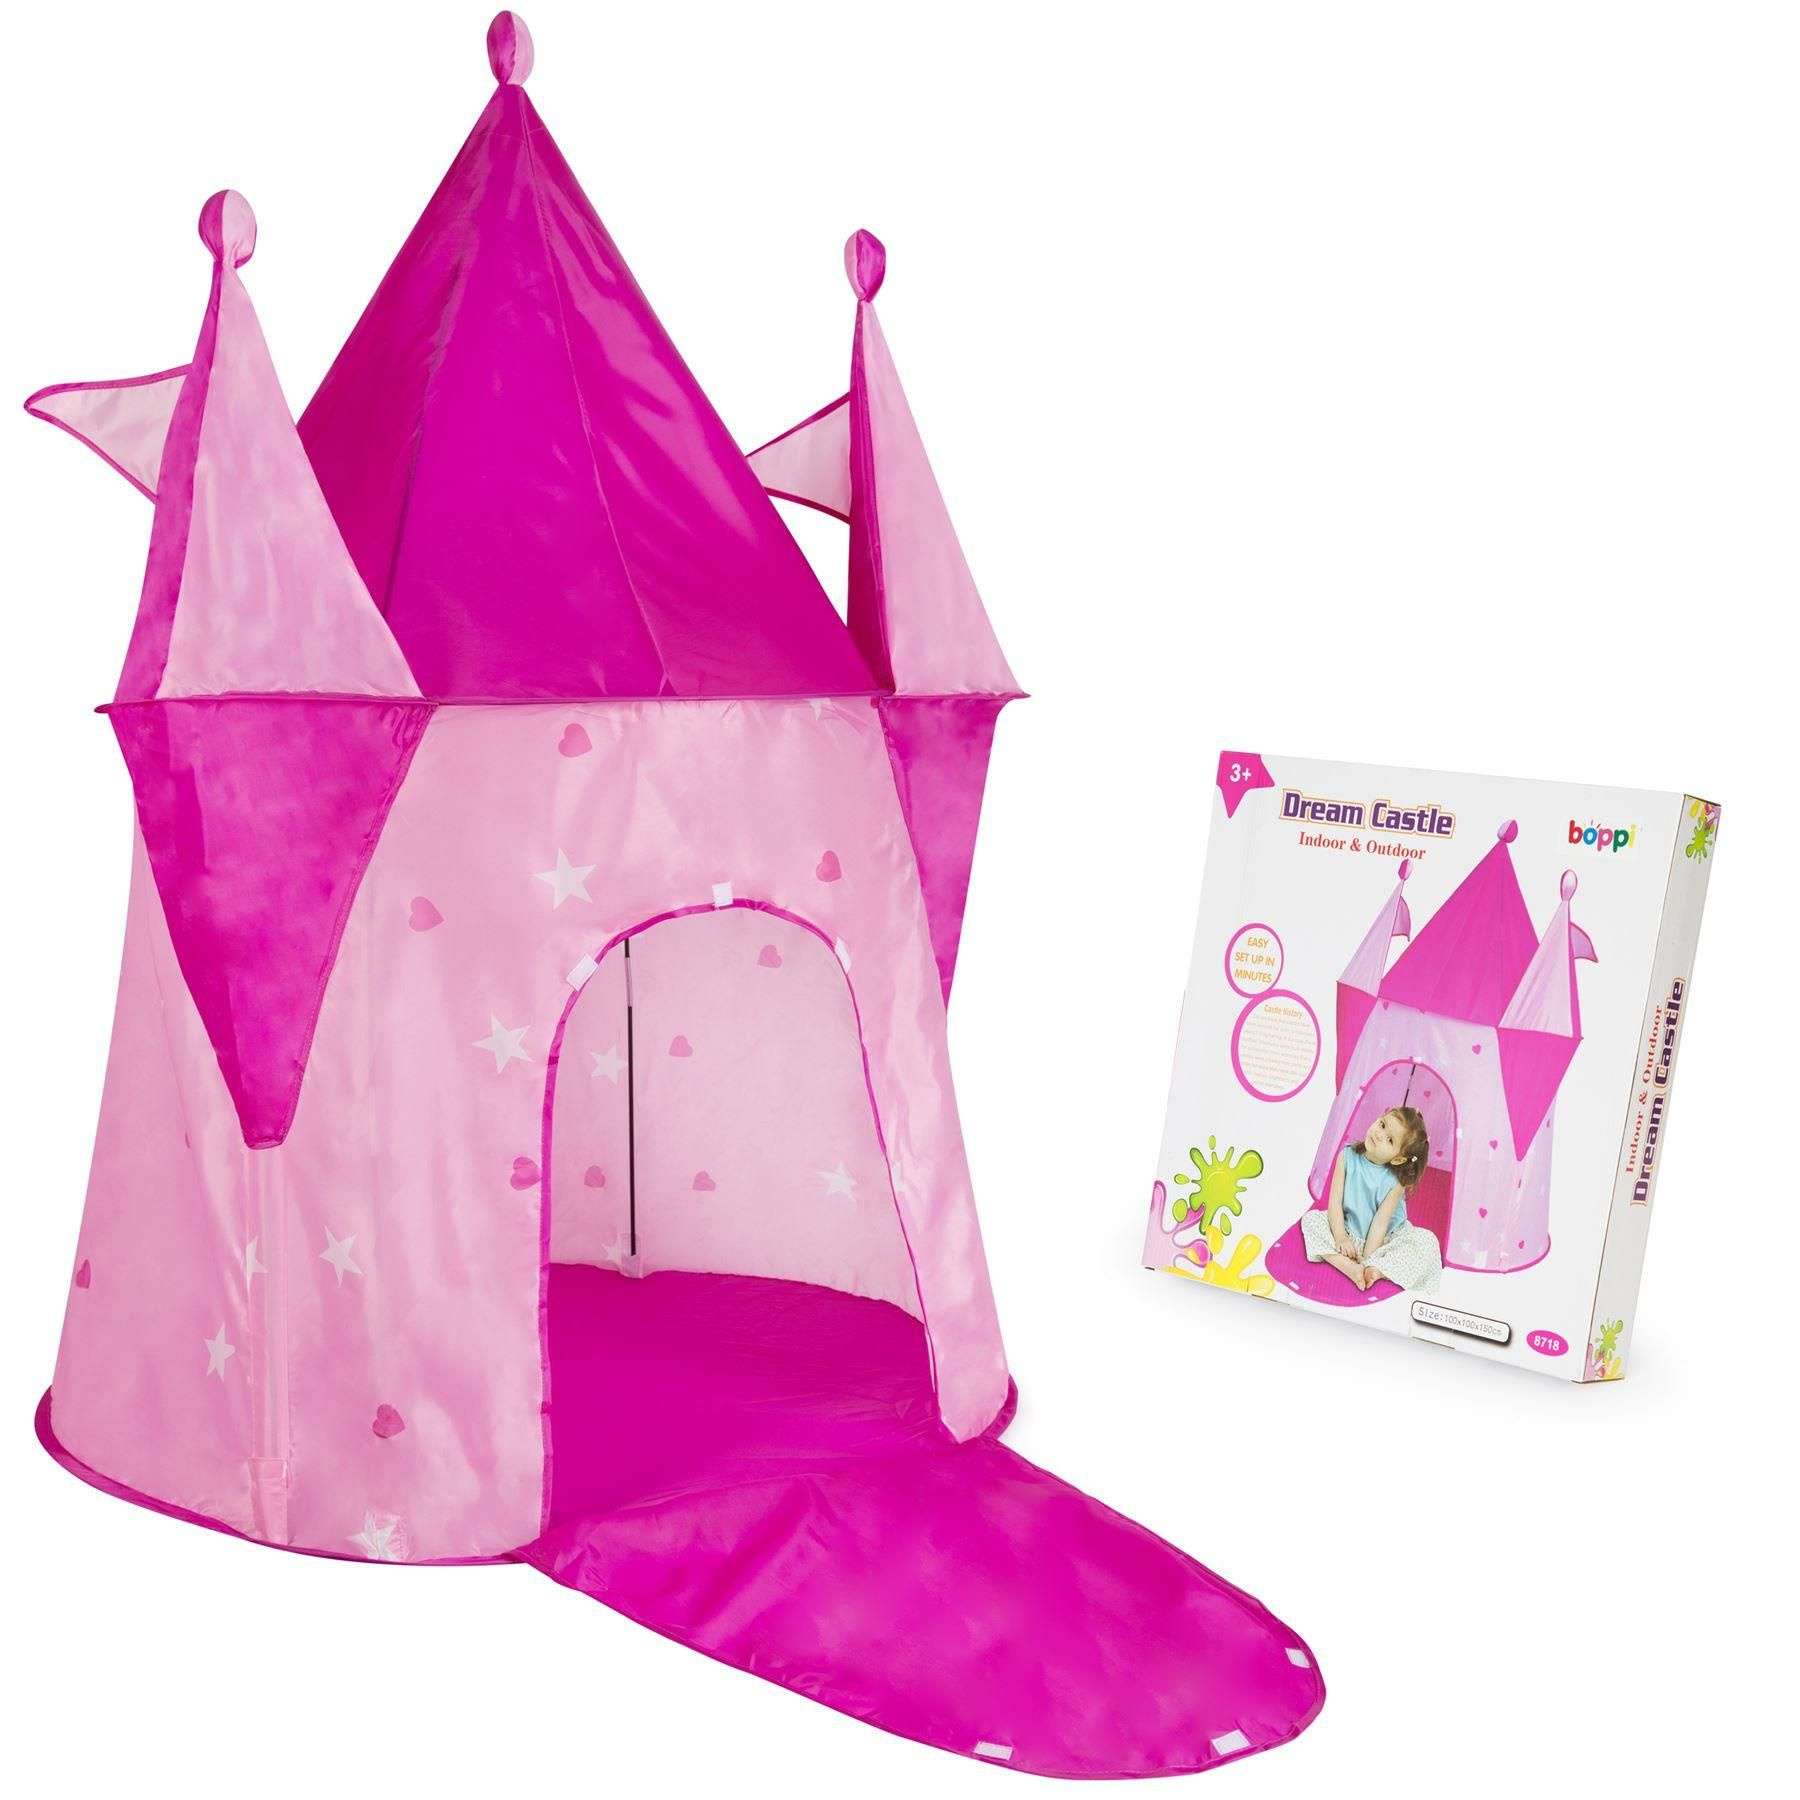 boppi Dream Castle Pink Pop Up Play Tent by bopster